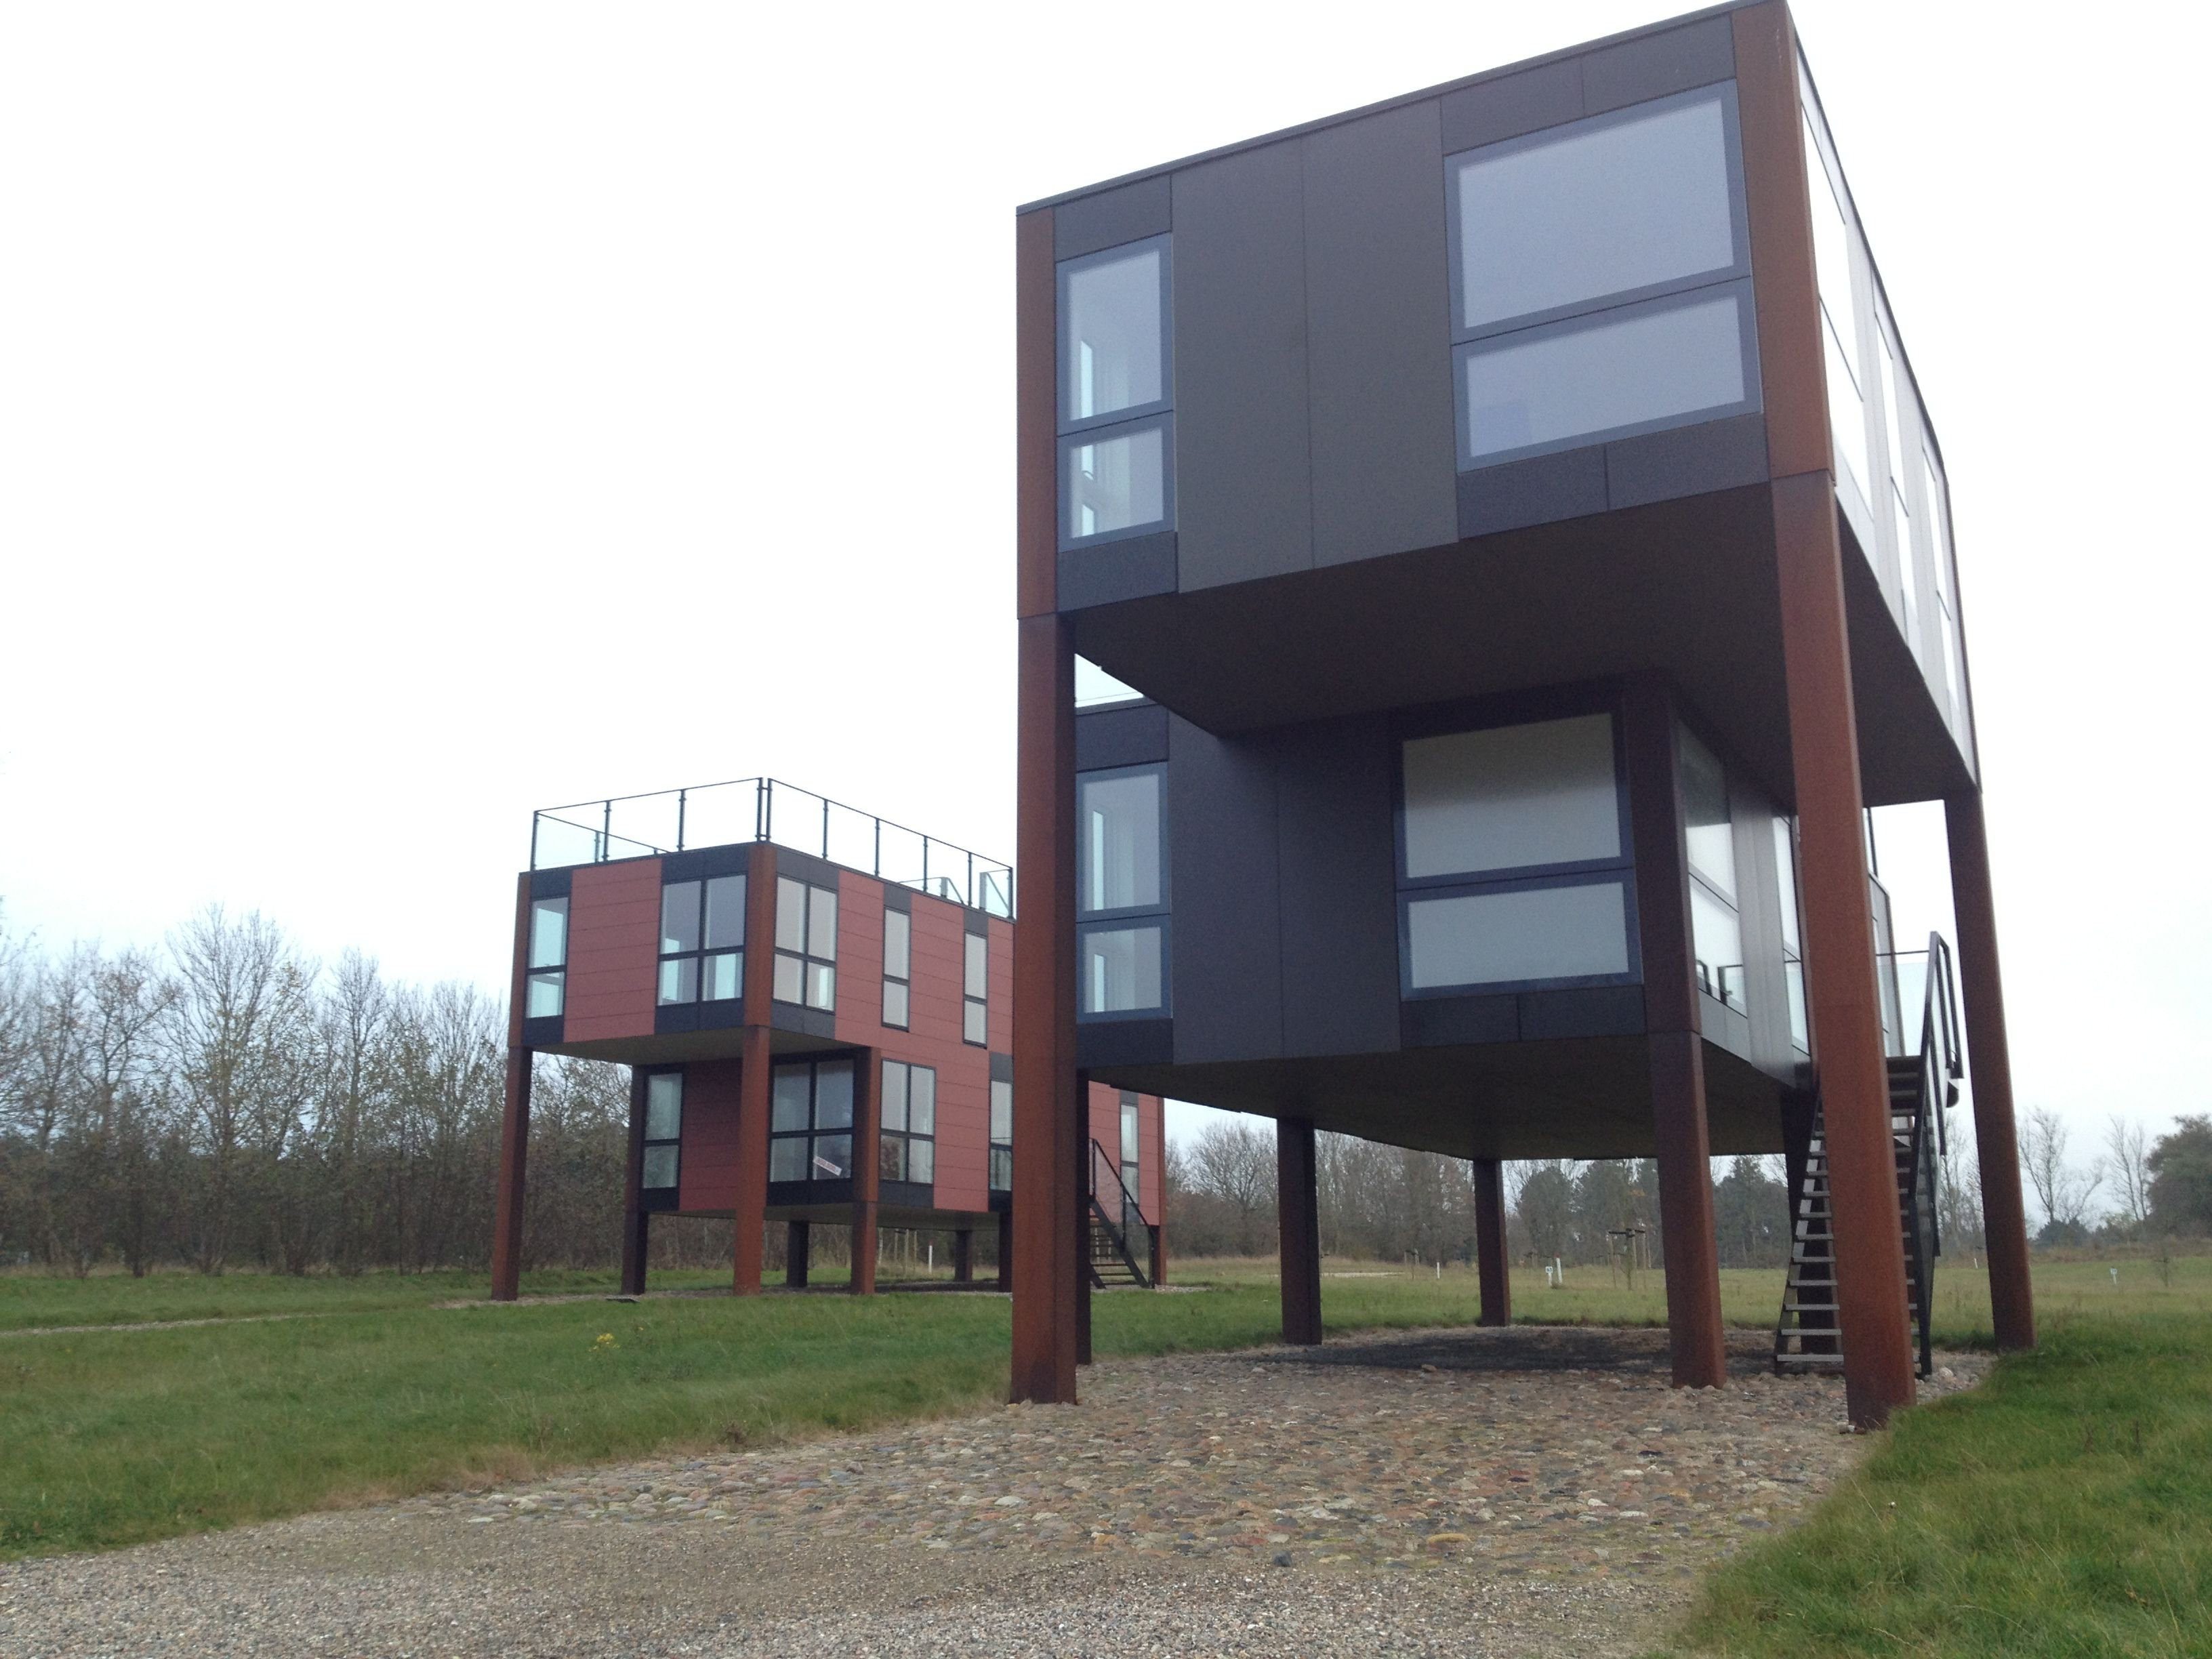 House On Stilts Buildings And Homes Pinterest